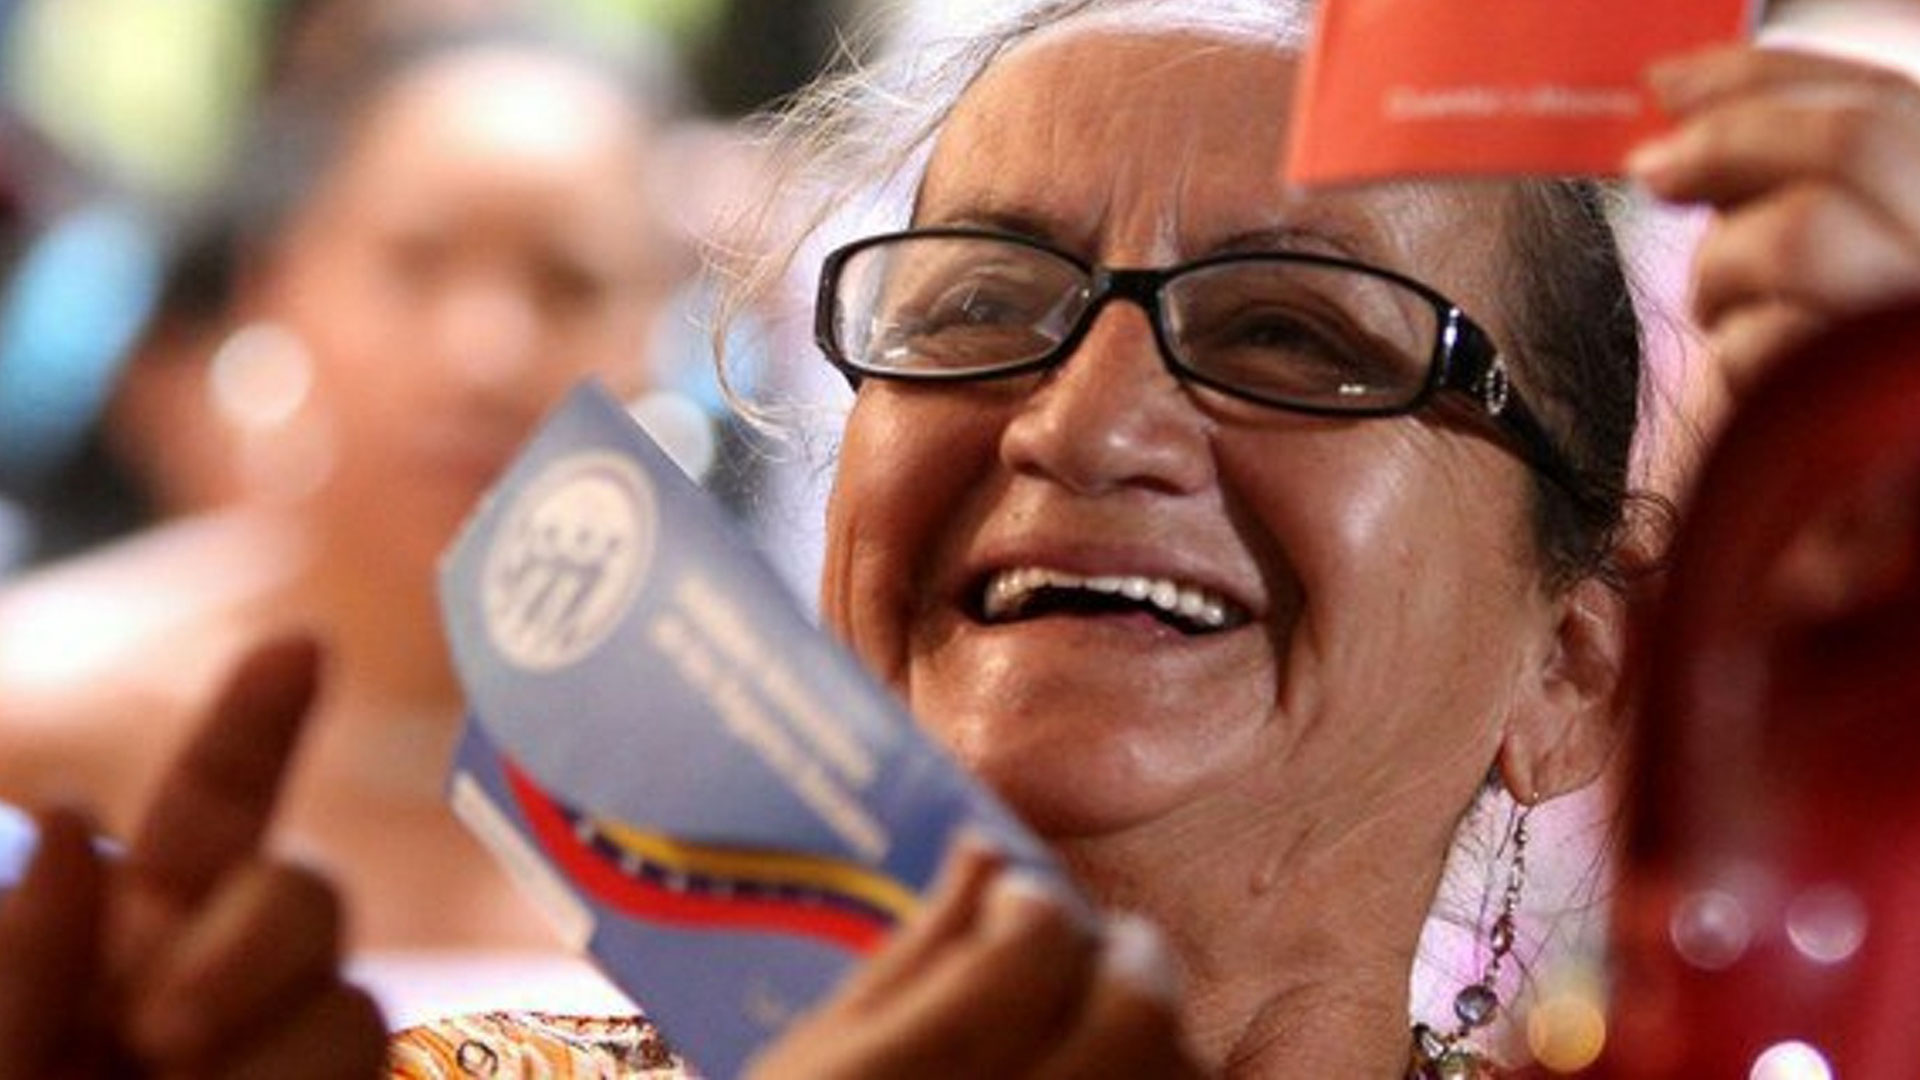 Pensiones Amor mayor junio - ACN